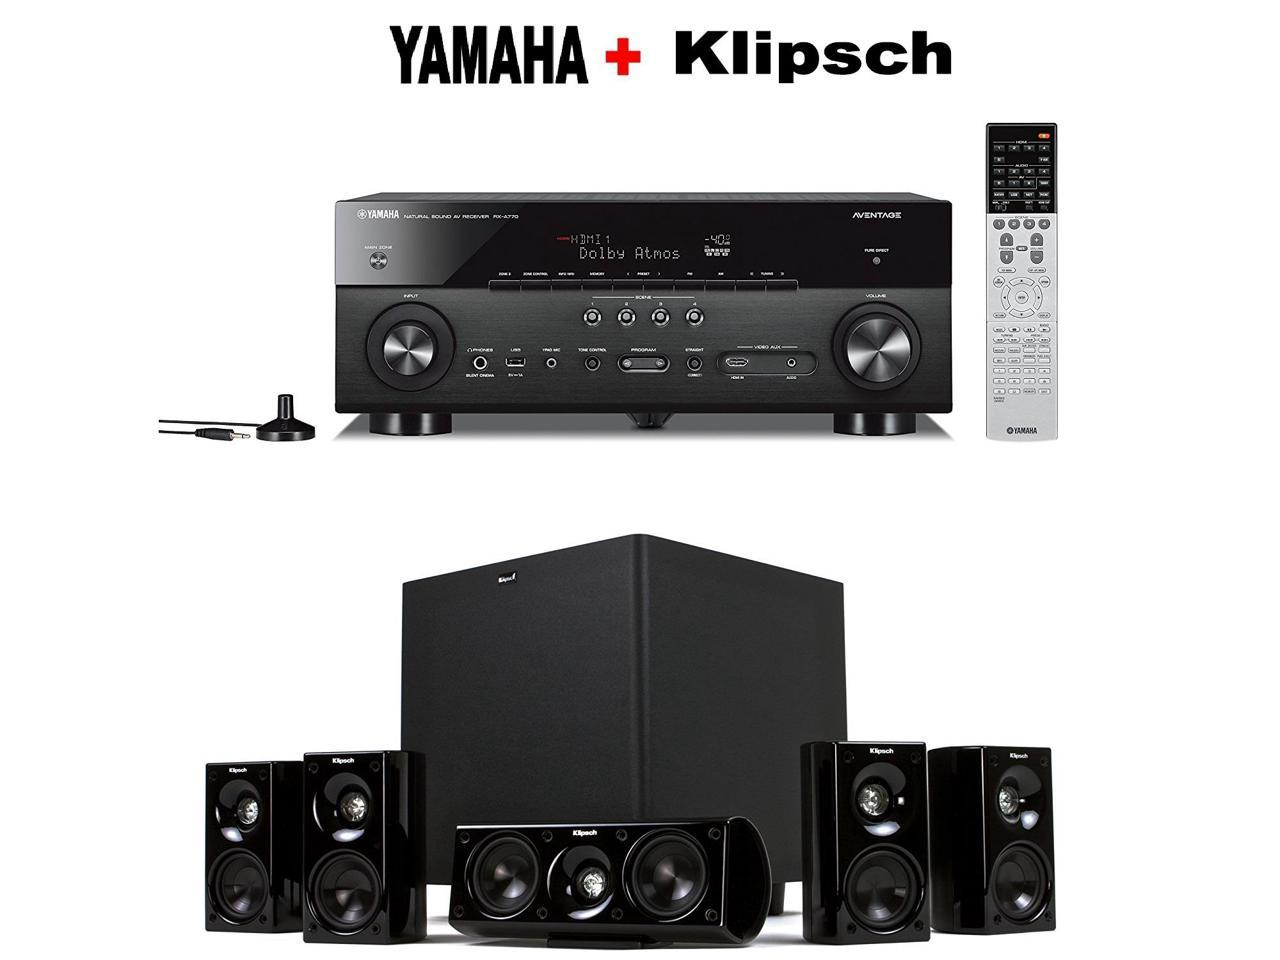 Yamaha RX-A770 receiver + Klipsch HD Theater 600 home theater speaker system bundle